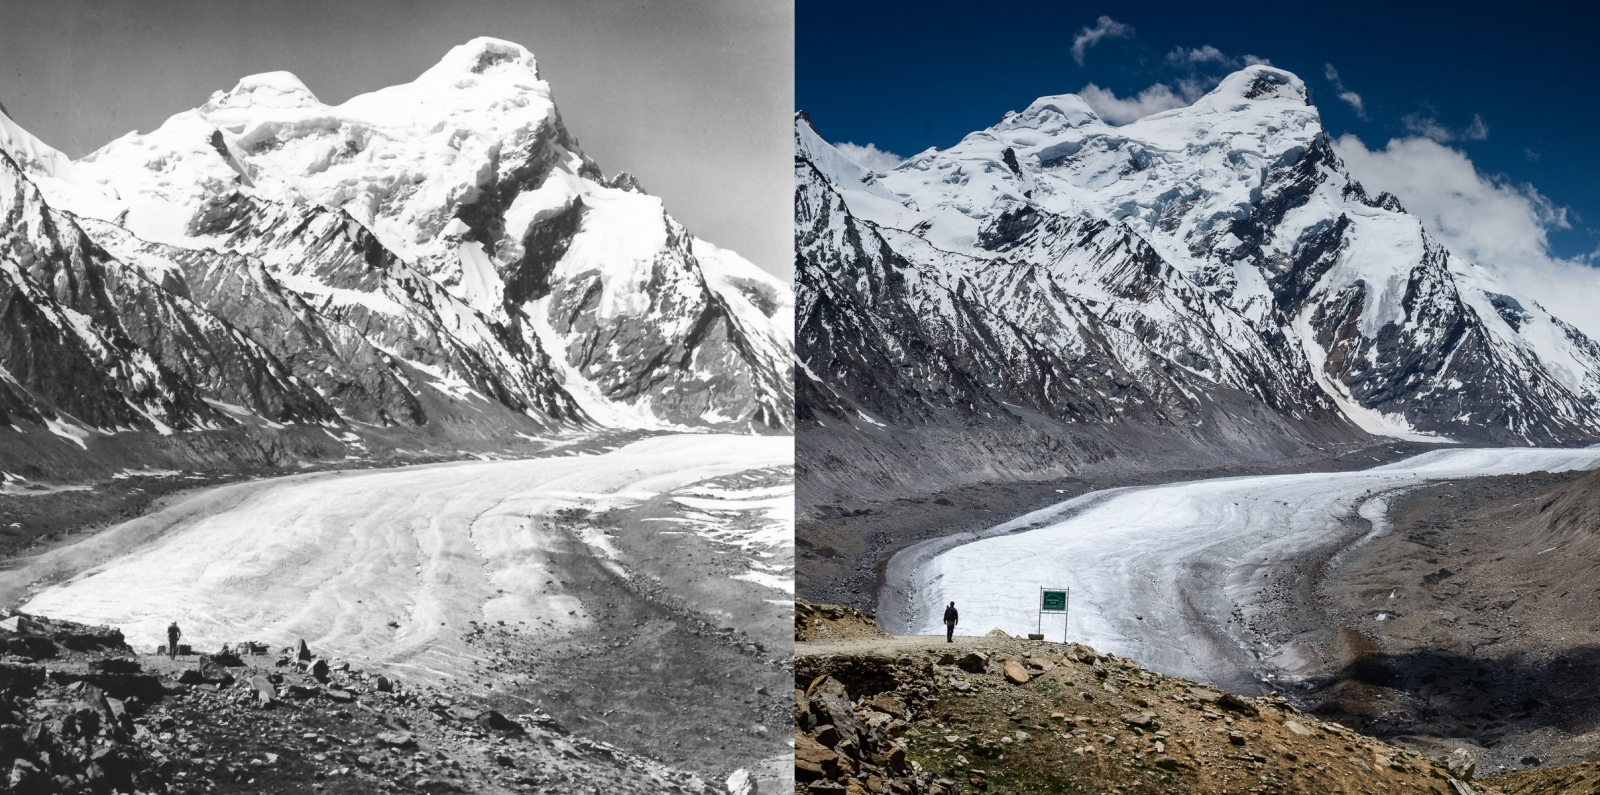 Repeat photography: photo on left taken by German alpinist, Dieter Kirch, in 1980; photo on right taken by Christopher Rubey, 2013.